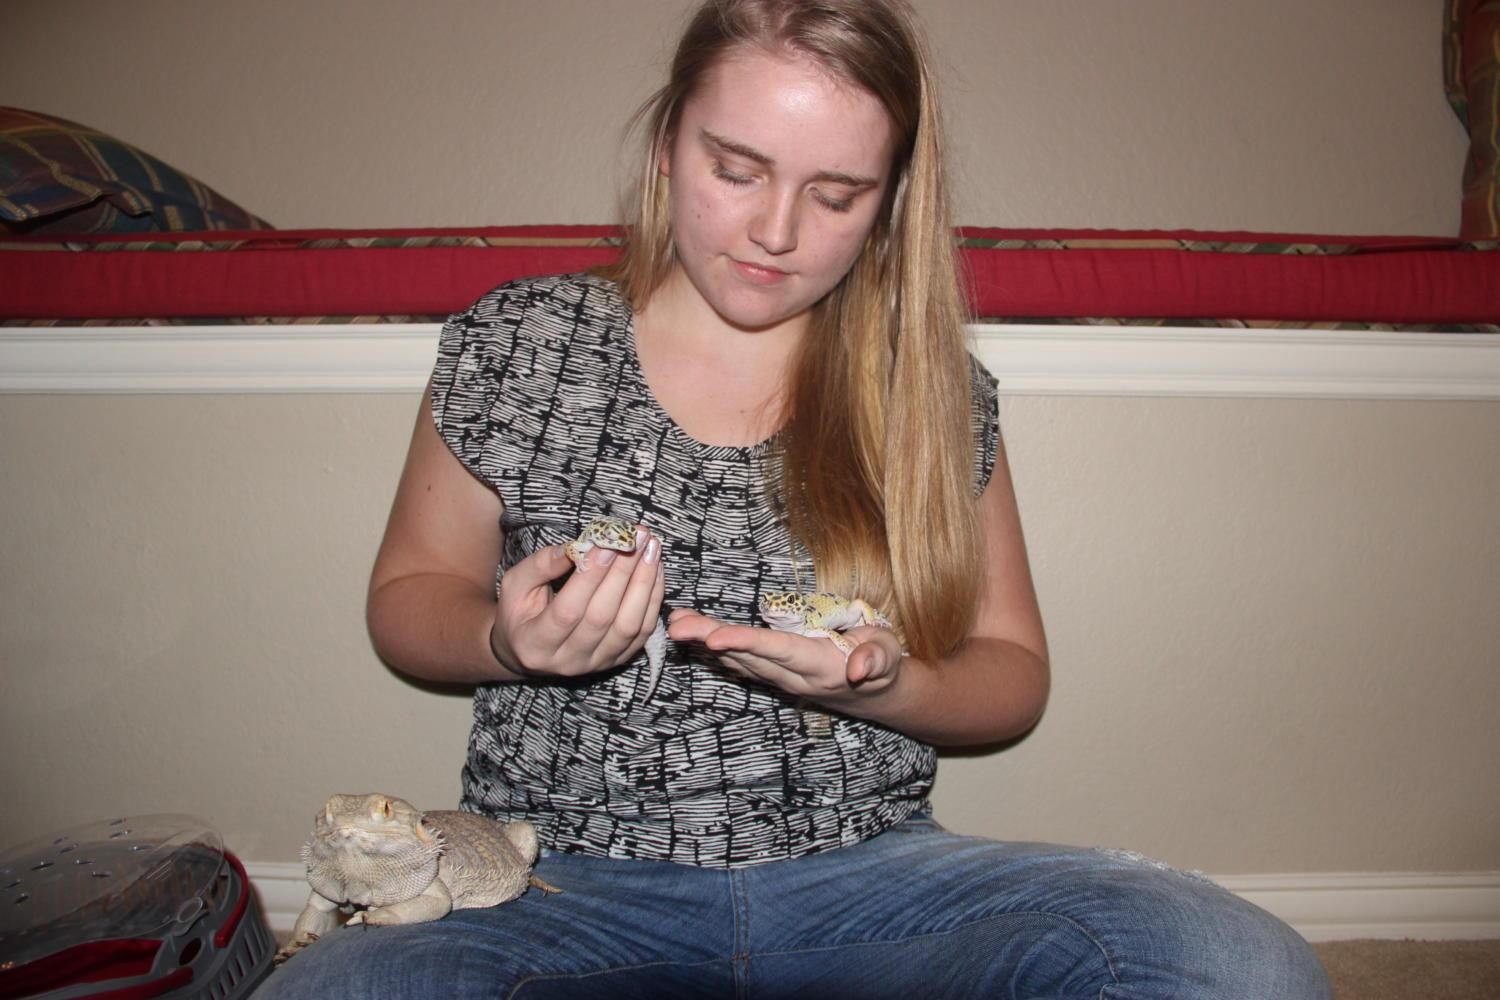 Coppell High School senior Lara Collins holds her two Leopard Geckos, Willow and Delilah, and her Bearded Dragon, Dartan on May 1. Collins' passion for animals has inspired her to take a gap year to travel through Europe and Australia to gain experience with animals for her future career in Captive Wildlife Care.